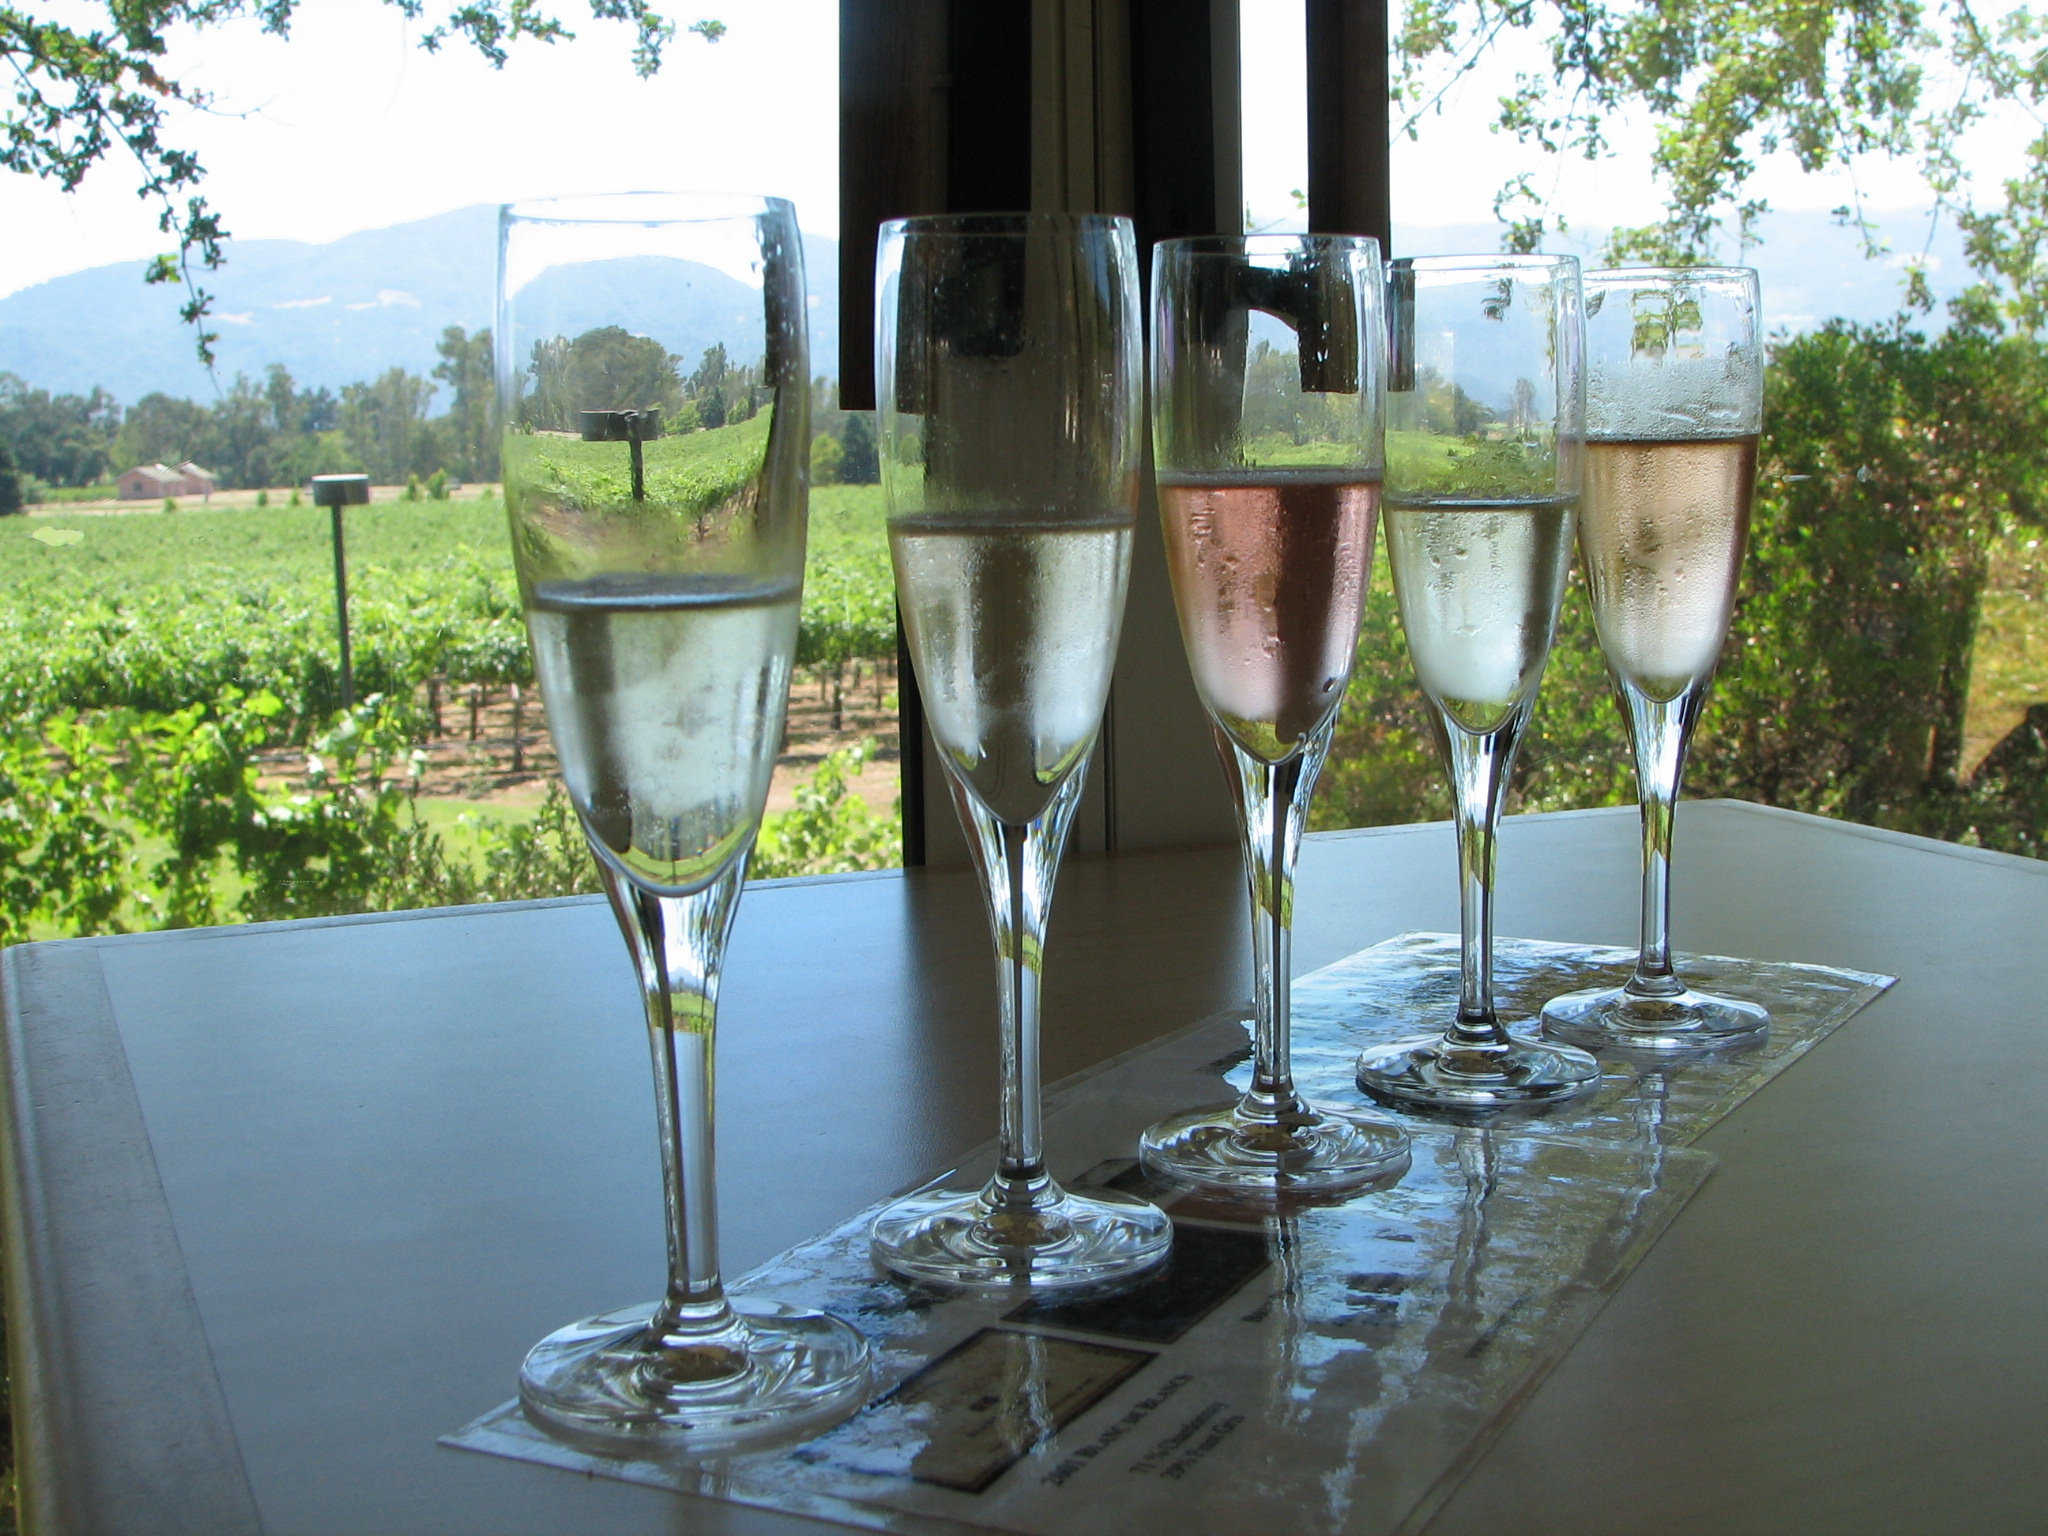 Champagne Vineyard Thanks to: http://praziq.blogspot.com/